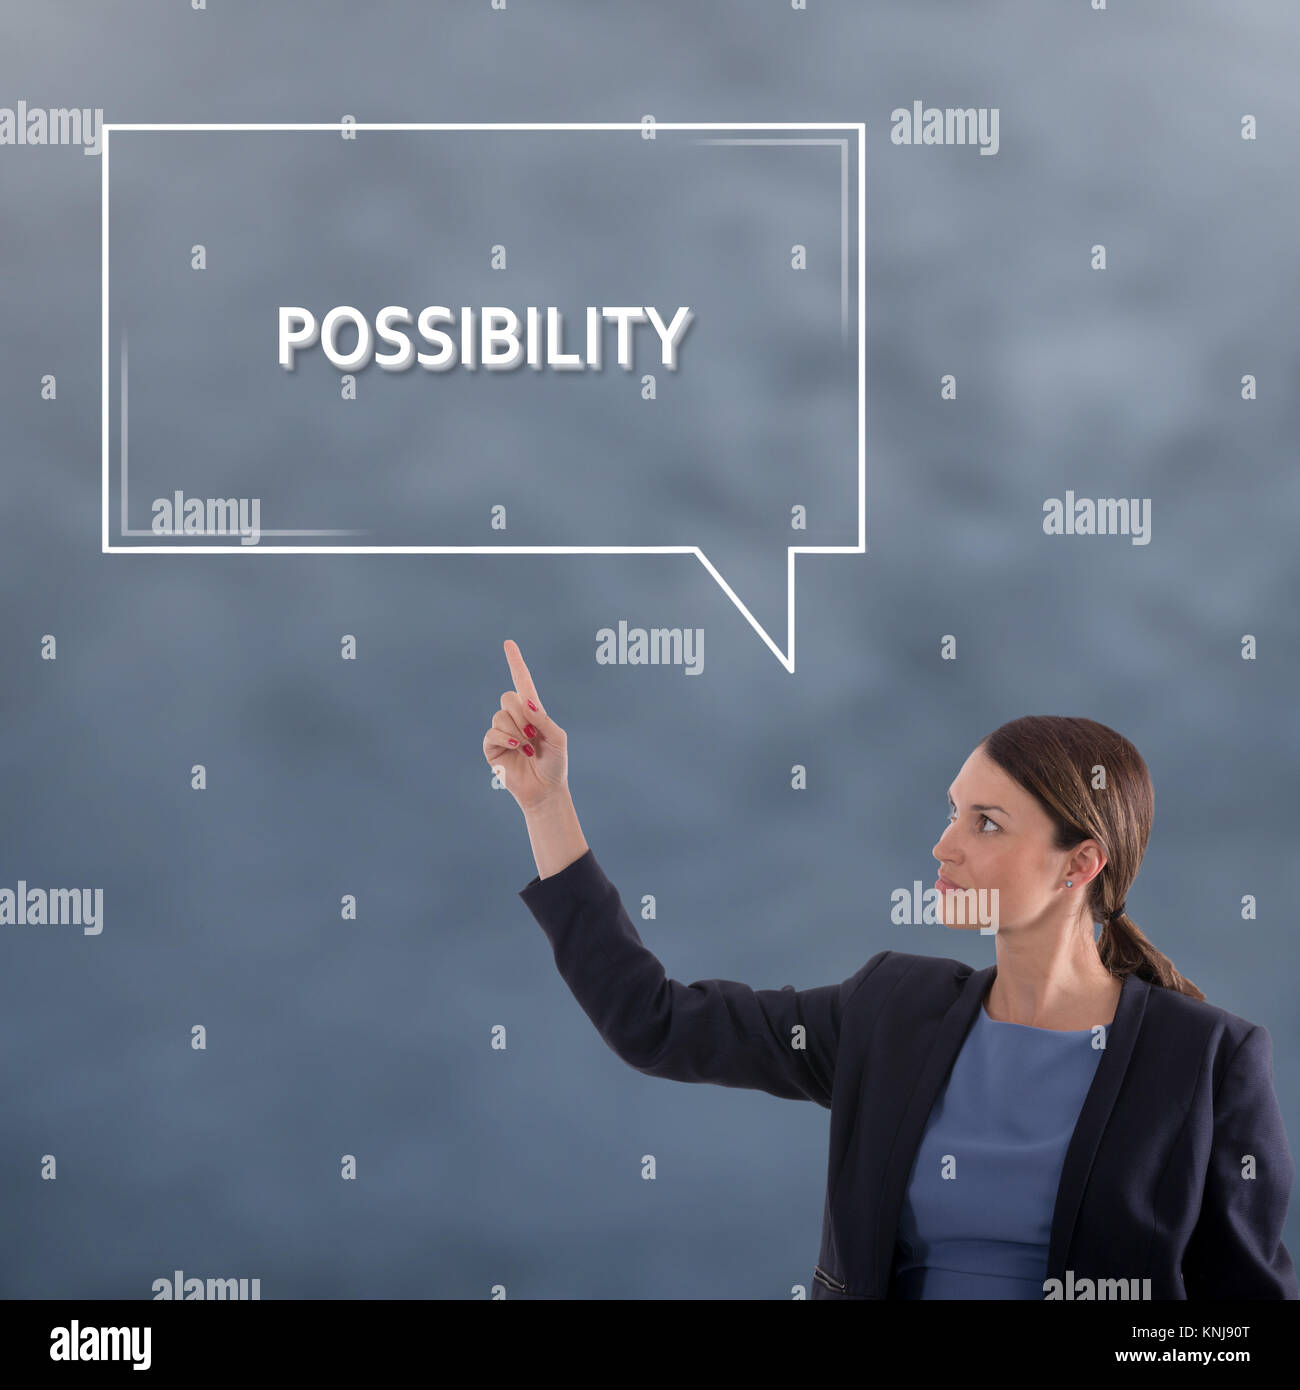 POSSIBILITY Business Concept. Business Woman Graphic Concept - Stock Image